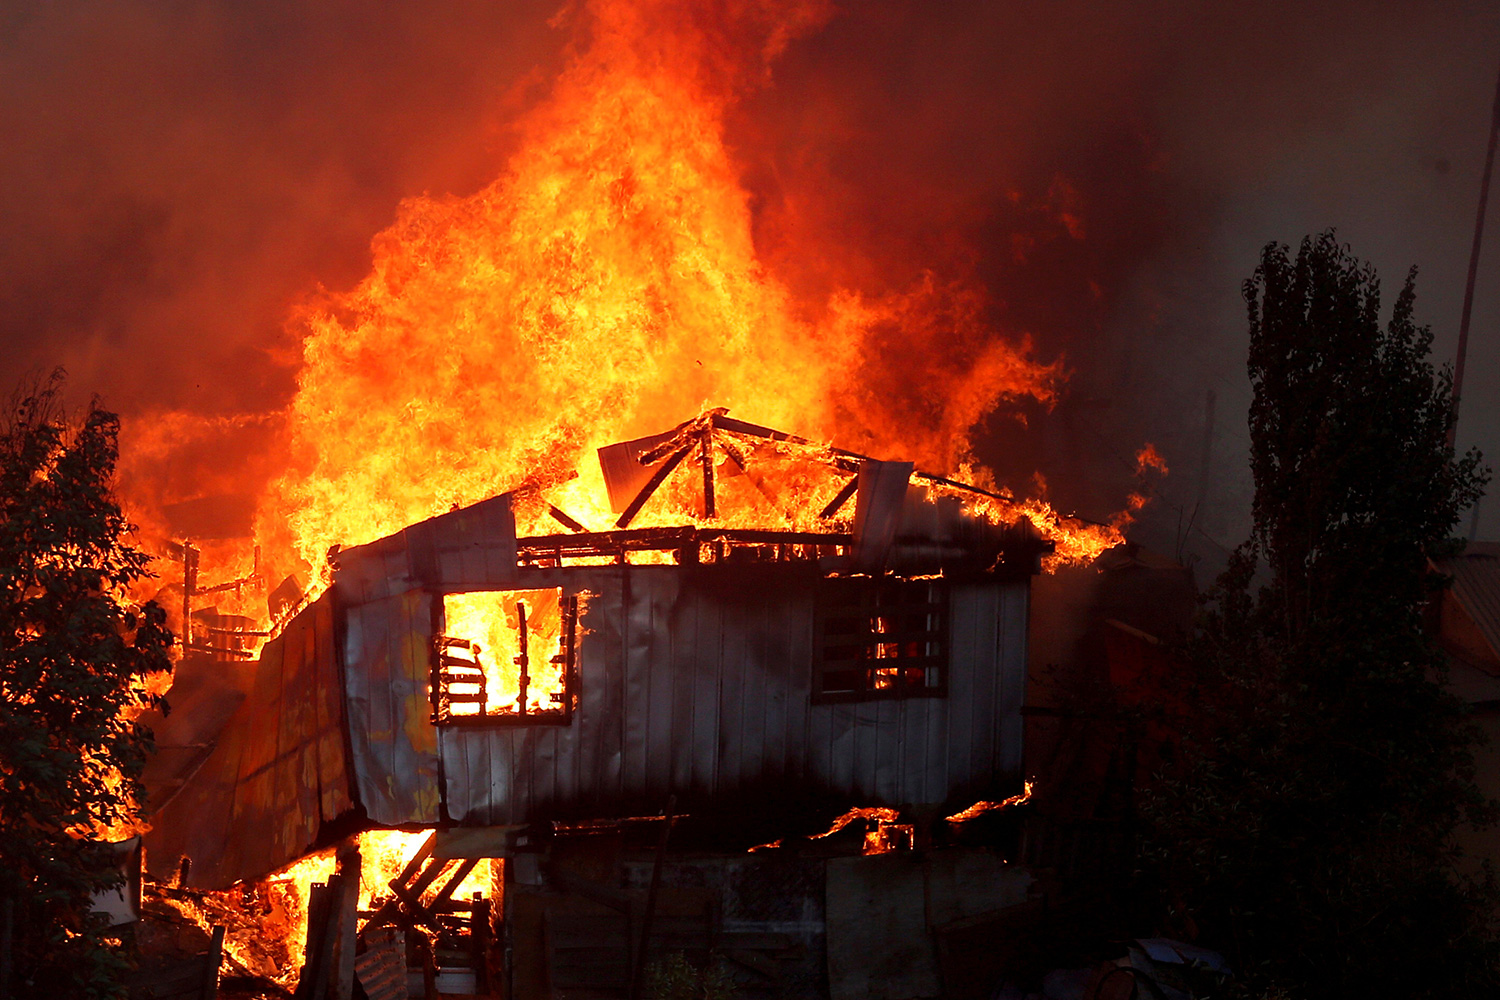 The photo shows a house engulfed in flames.